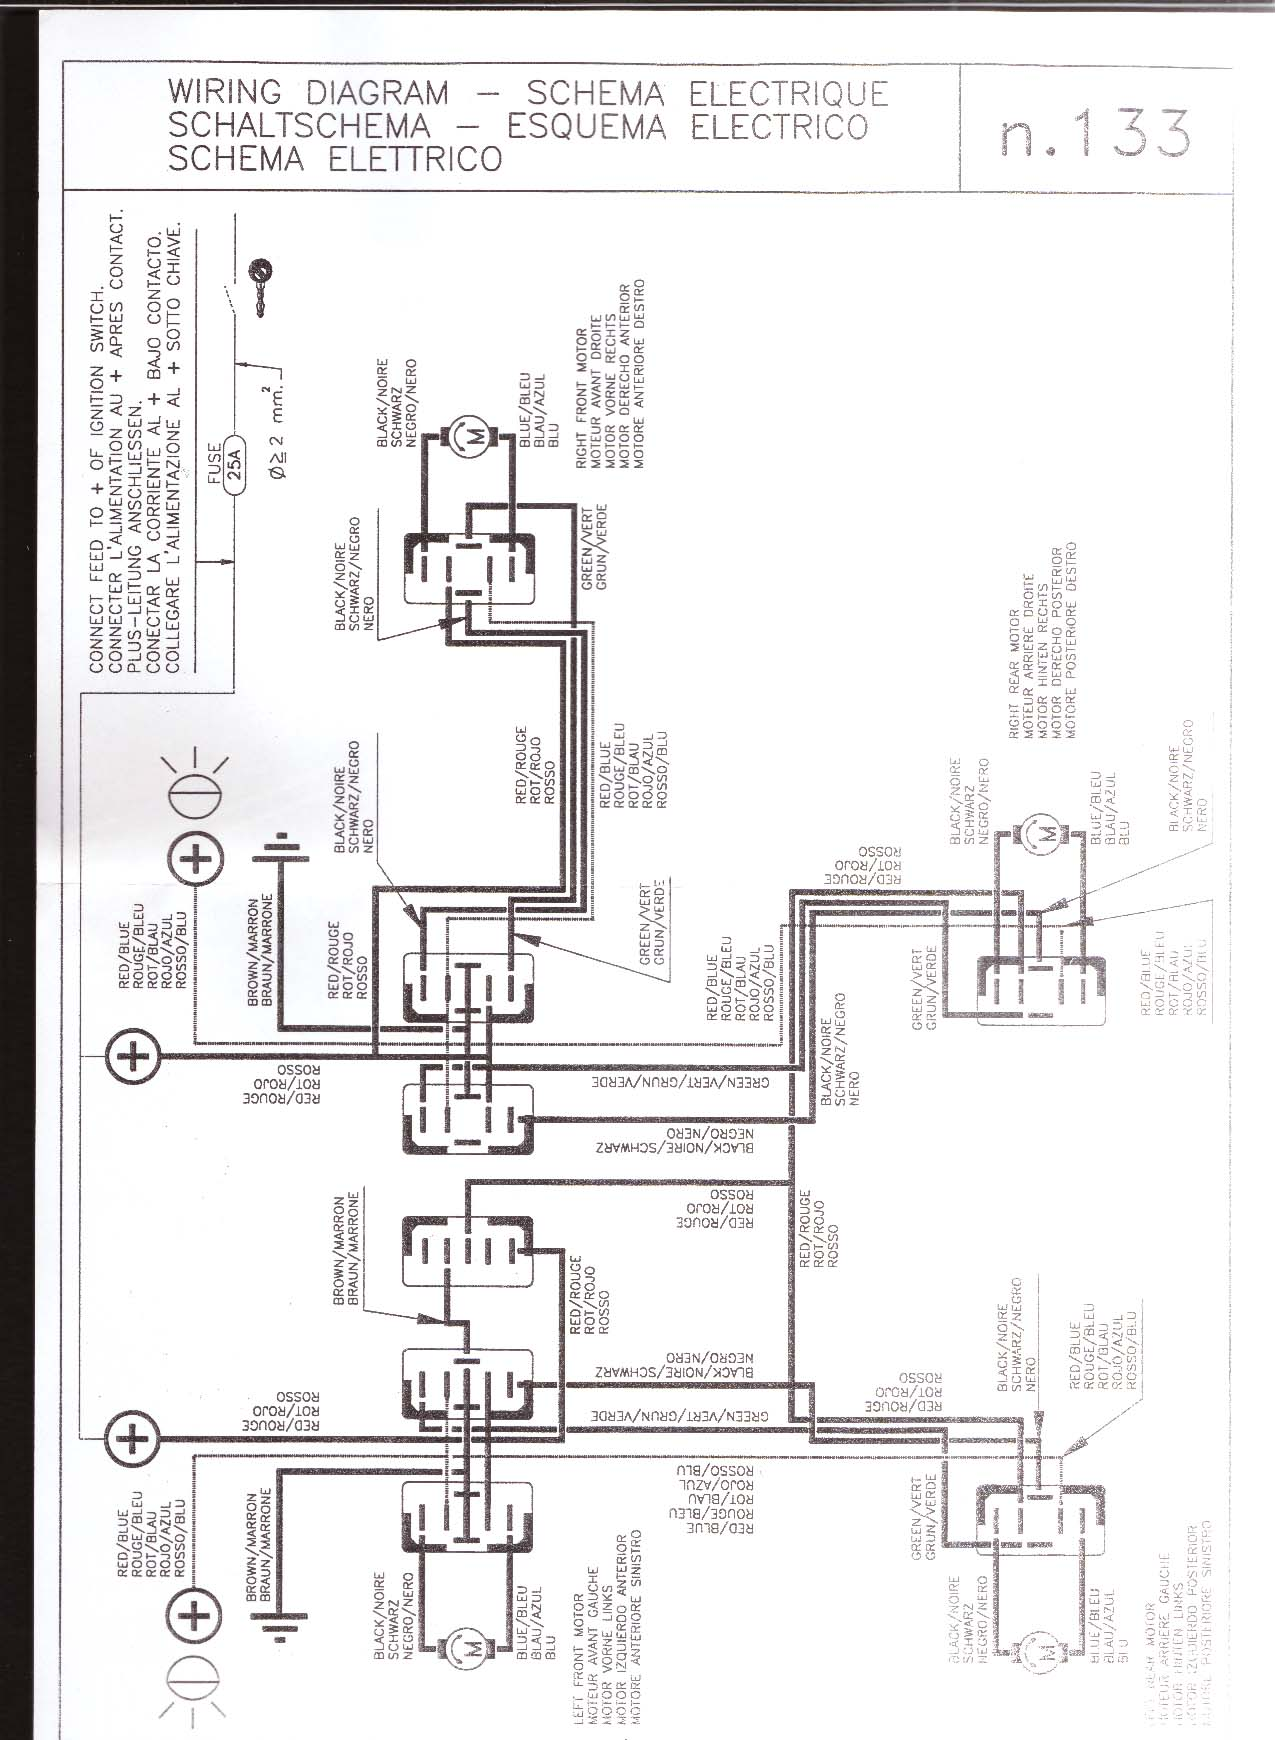 Electric Life Lock Wiring Diagram. Diagram. Auto Wiring